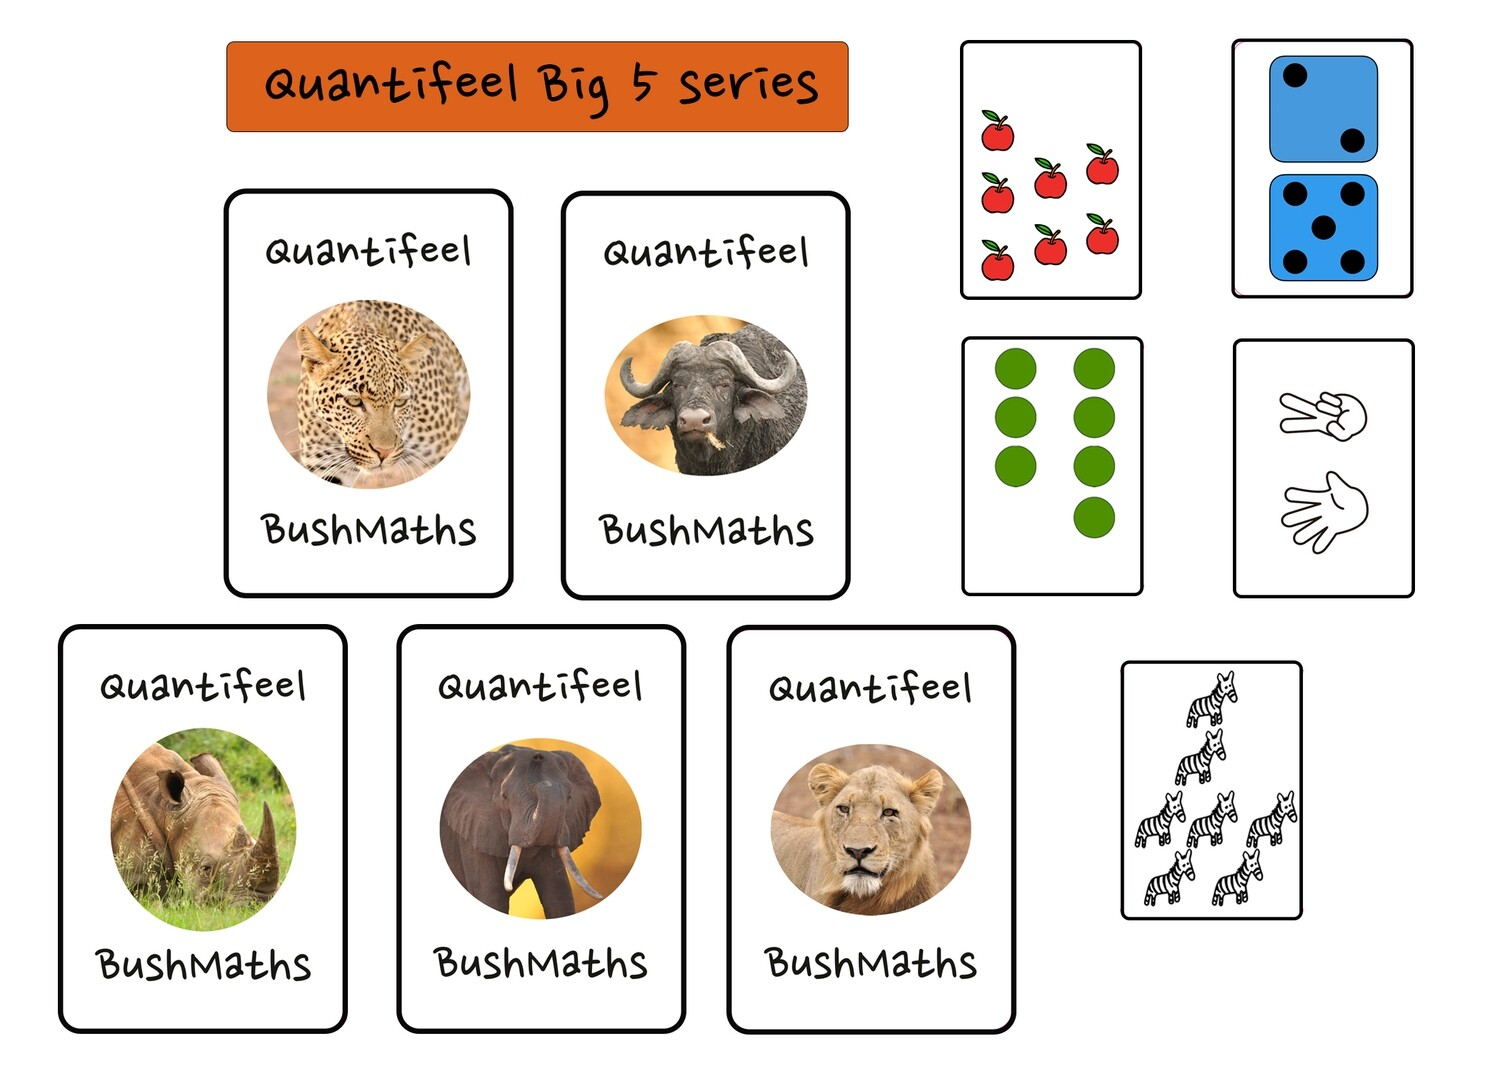 Quantifeel educational game